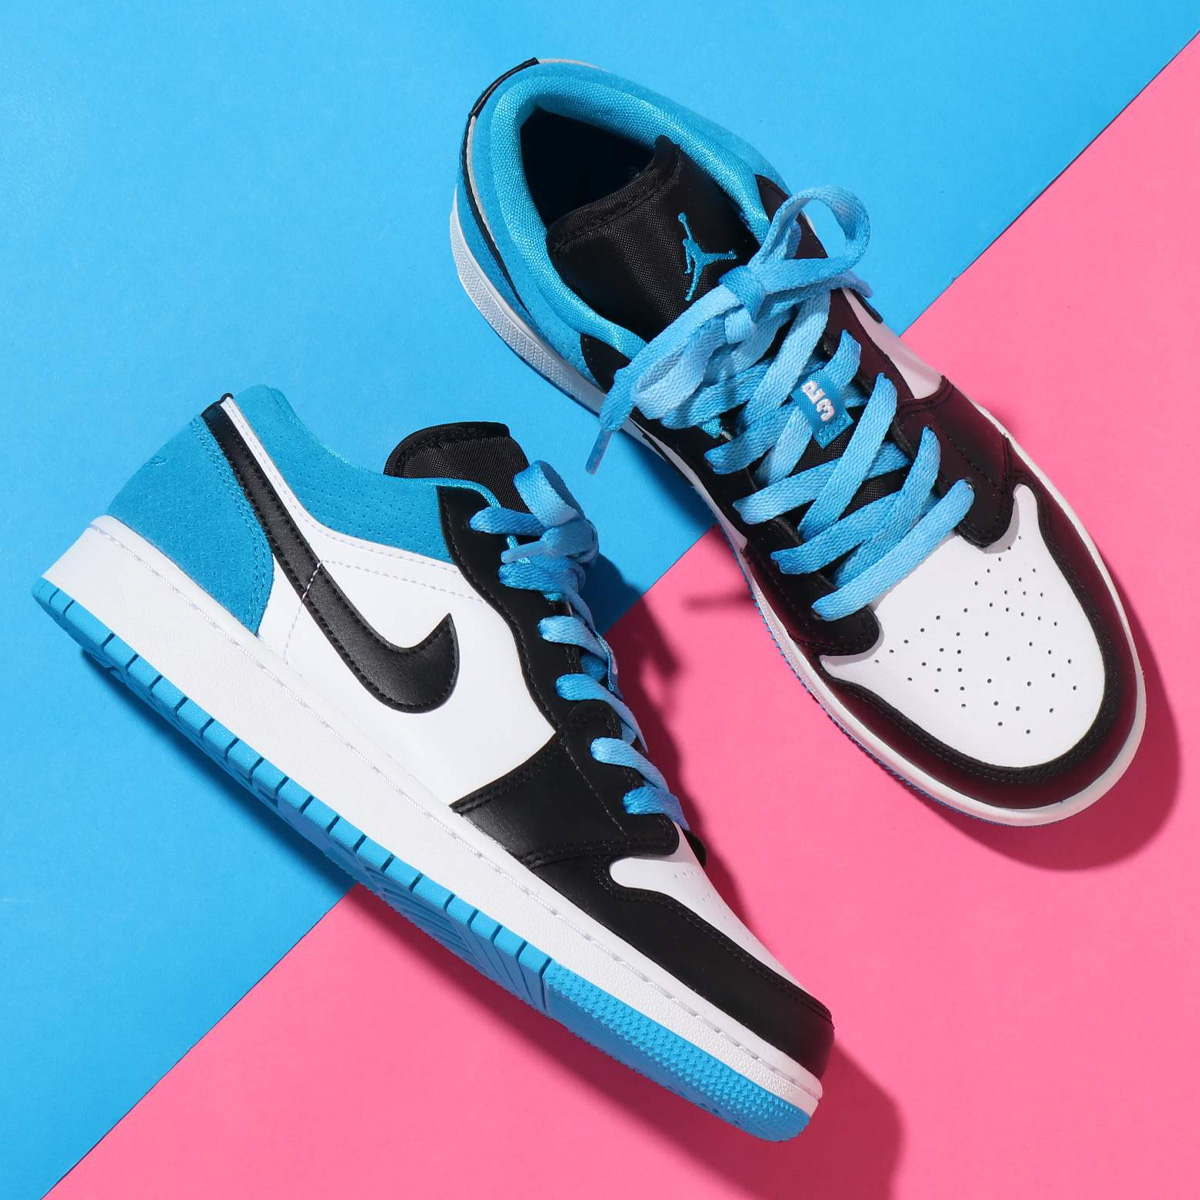 Kicks Deals Canada A Twitter Perfect For Shorts Season That Also Won T Break The Bank Like Other Blue Aj1s You Won T Want To Sleep On This Great Laser Blue Colourway Of